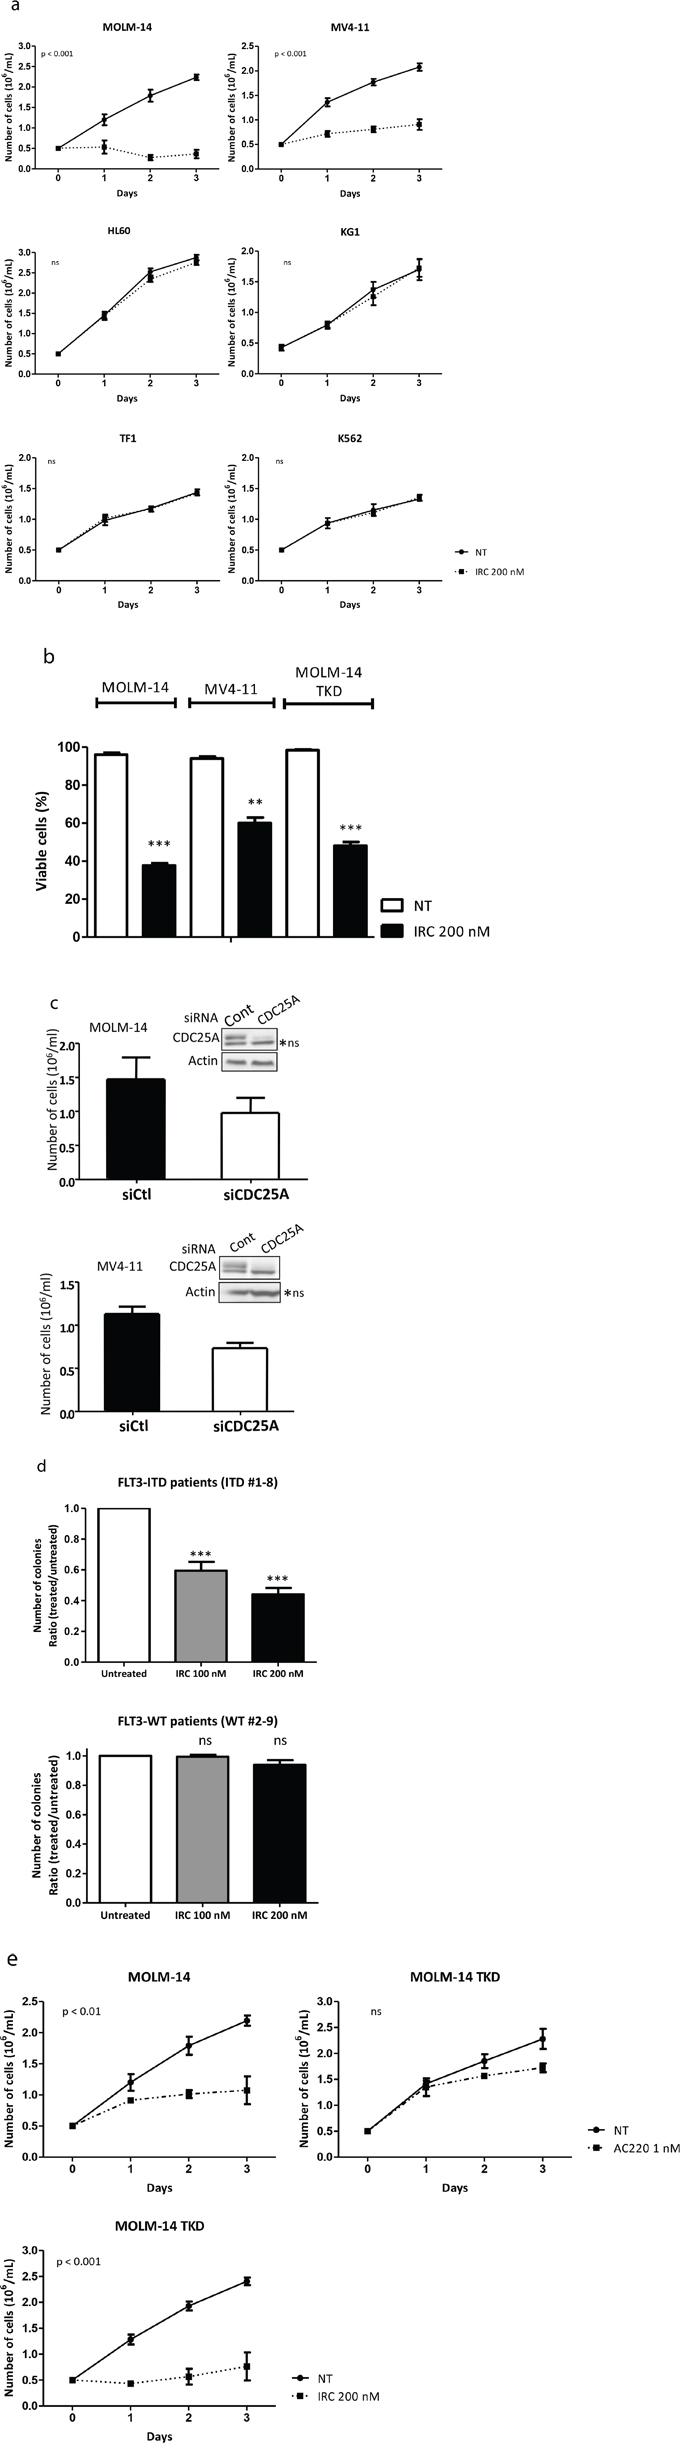 CDC25A is an important determinant of FLT3-ITD leukemic cells proliferation.